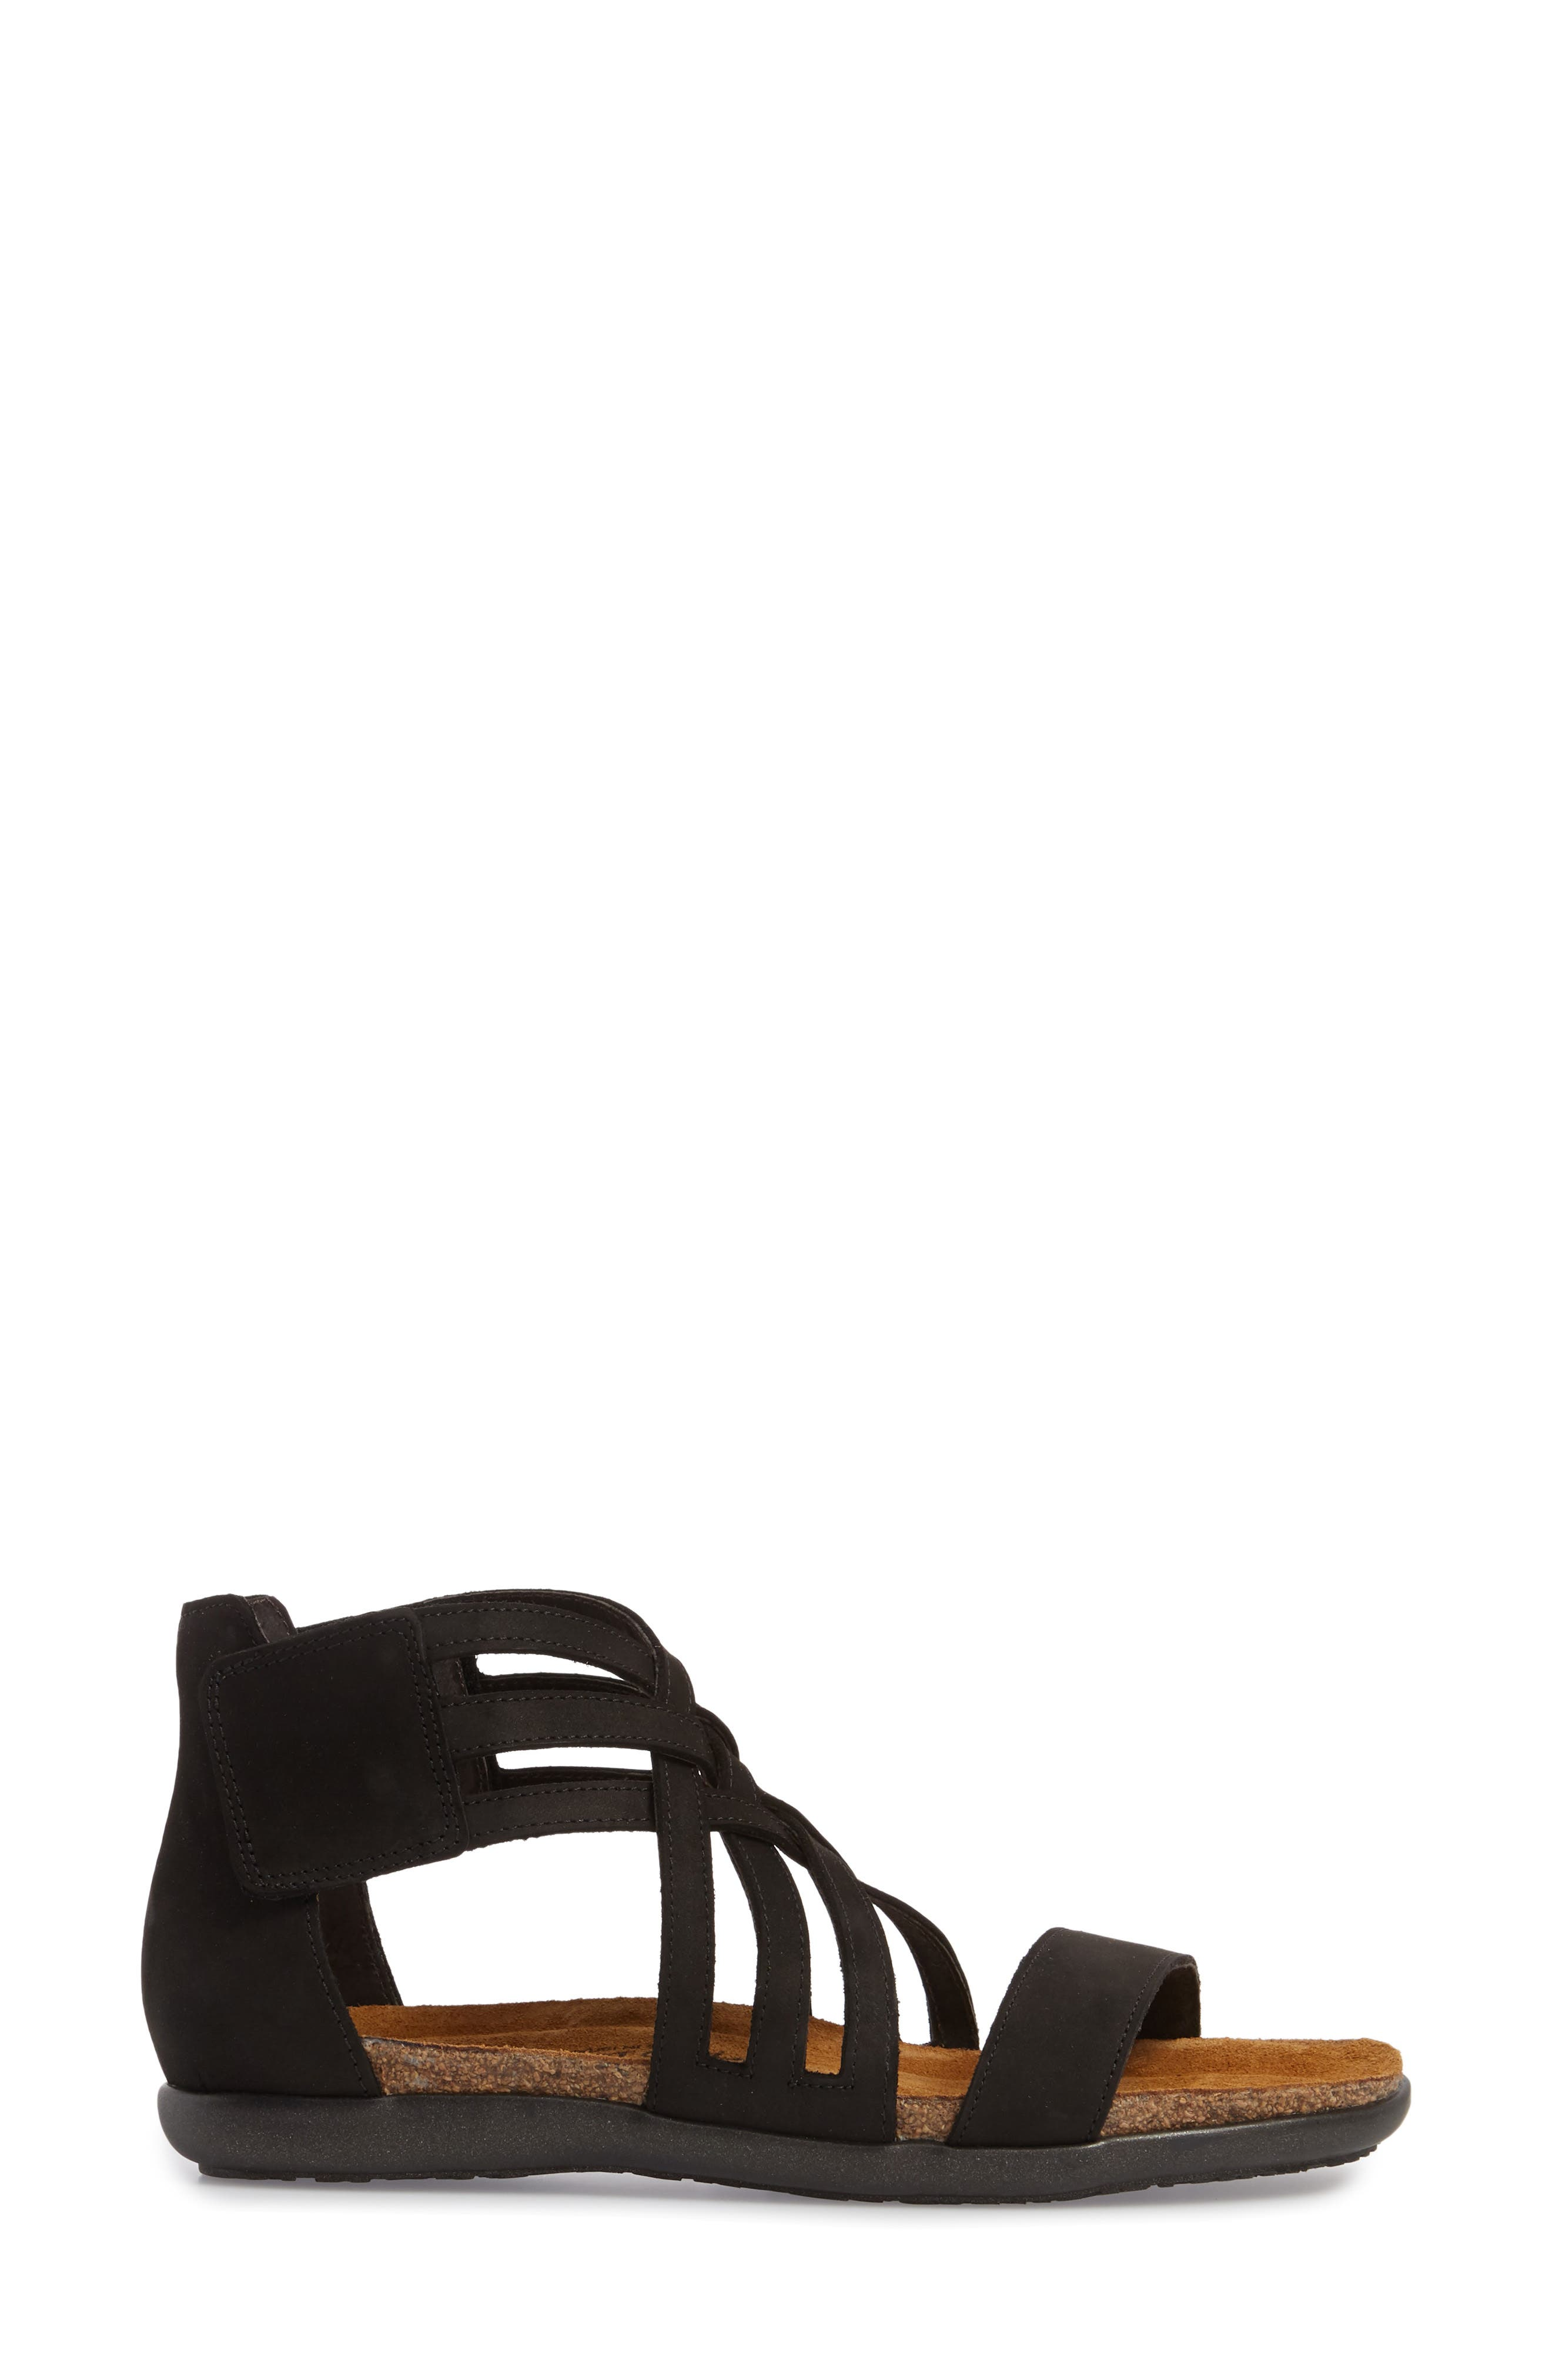 NAOT, Marita Sandal, Alternate thumbnail 3, color, BLACK VELVET NUBUCK